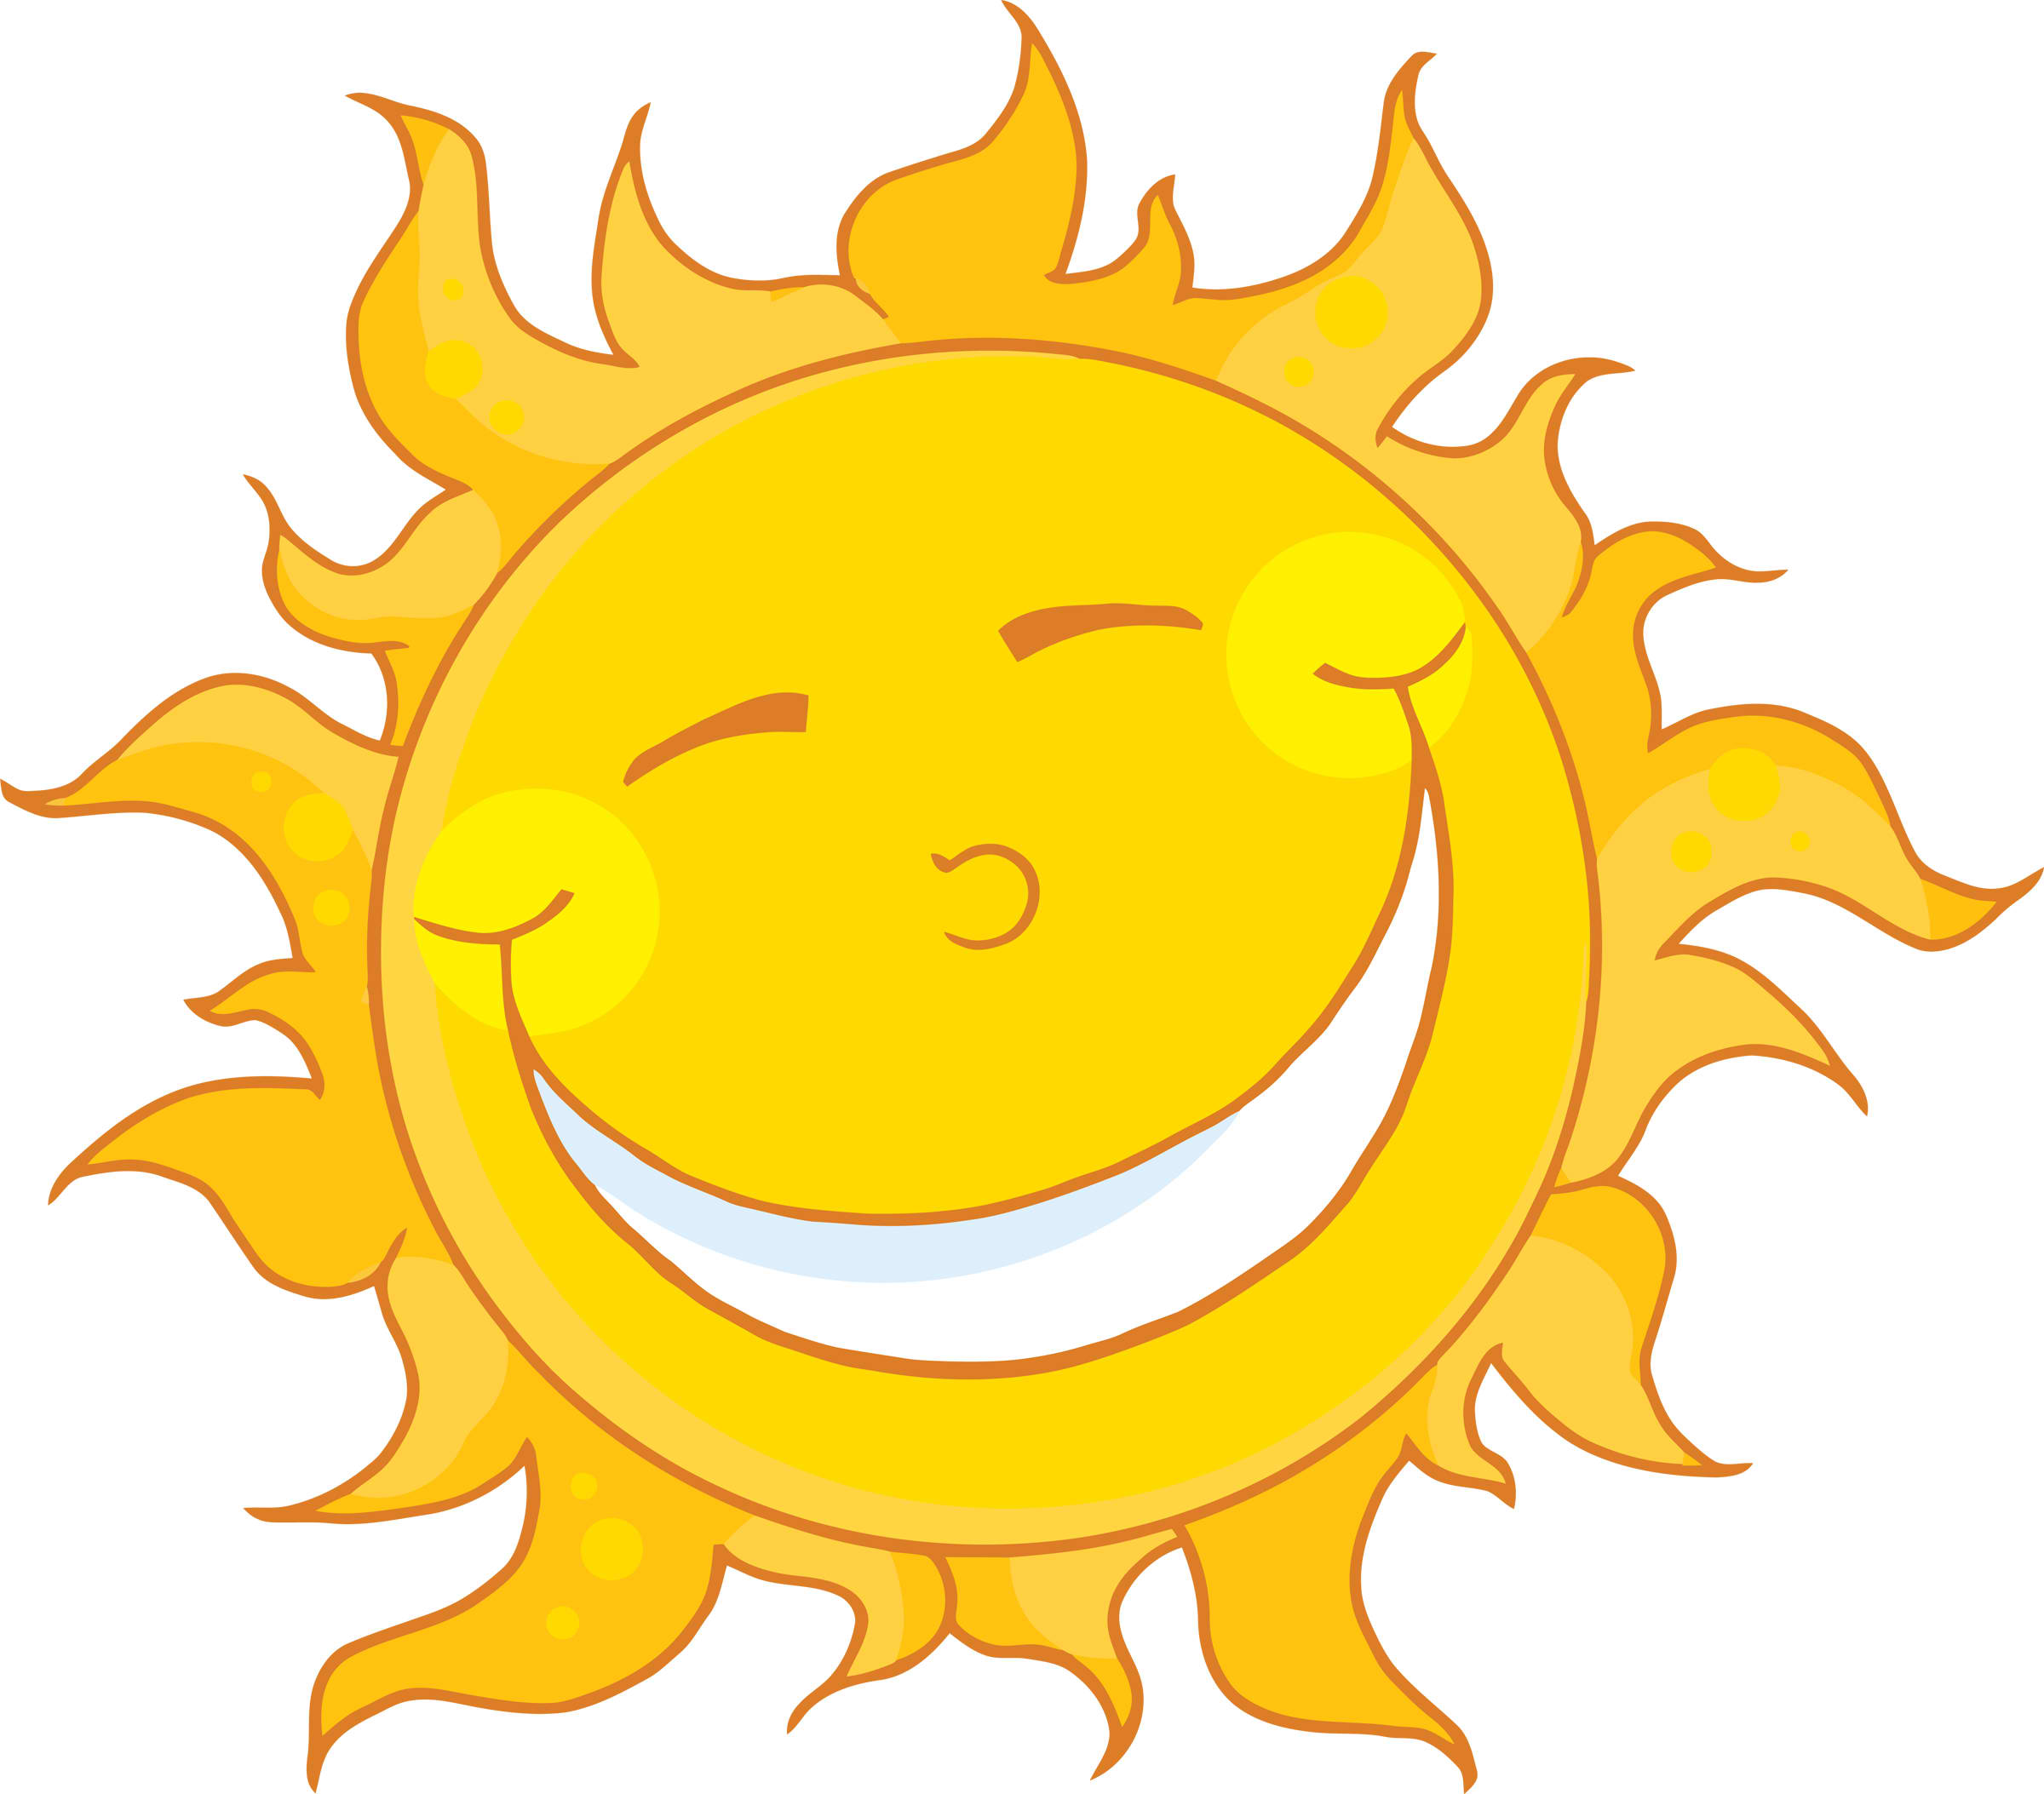 Cartoon Sun Clipart - Clipart Kid